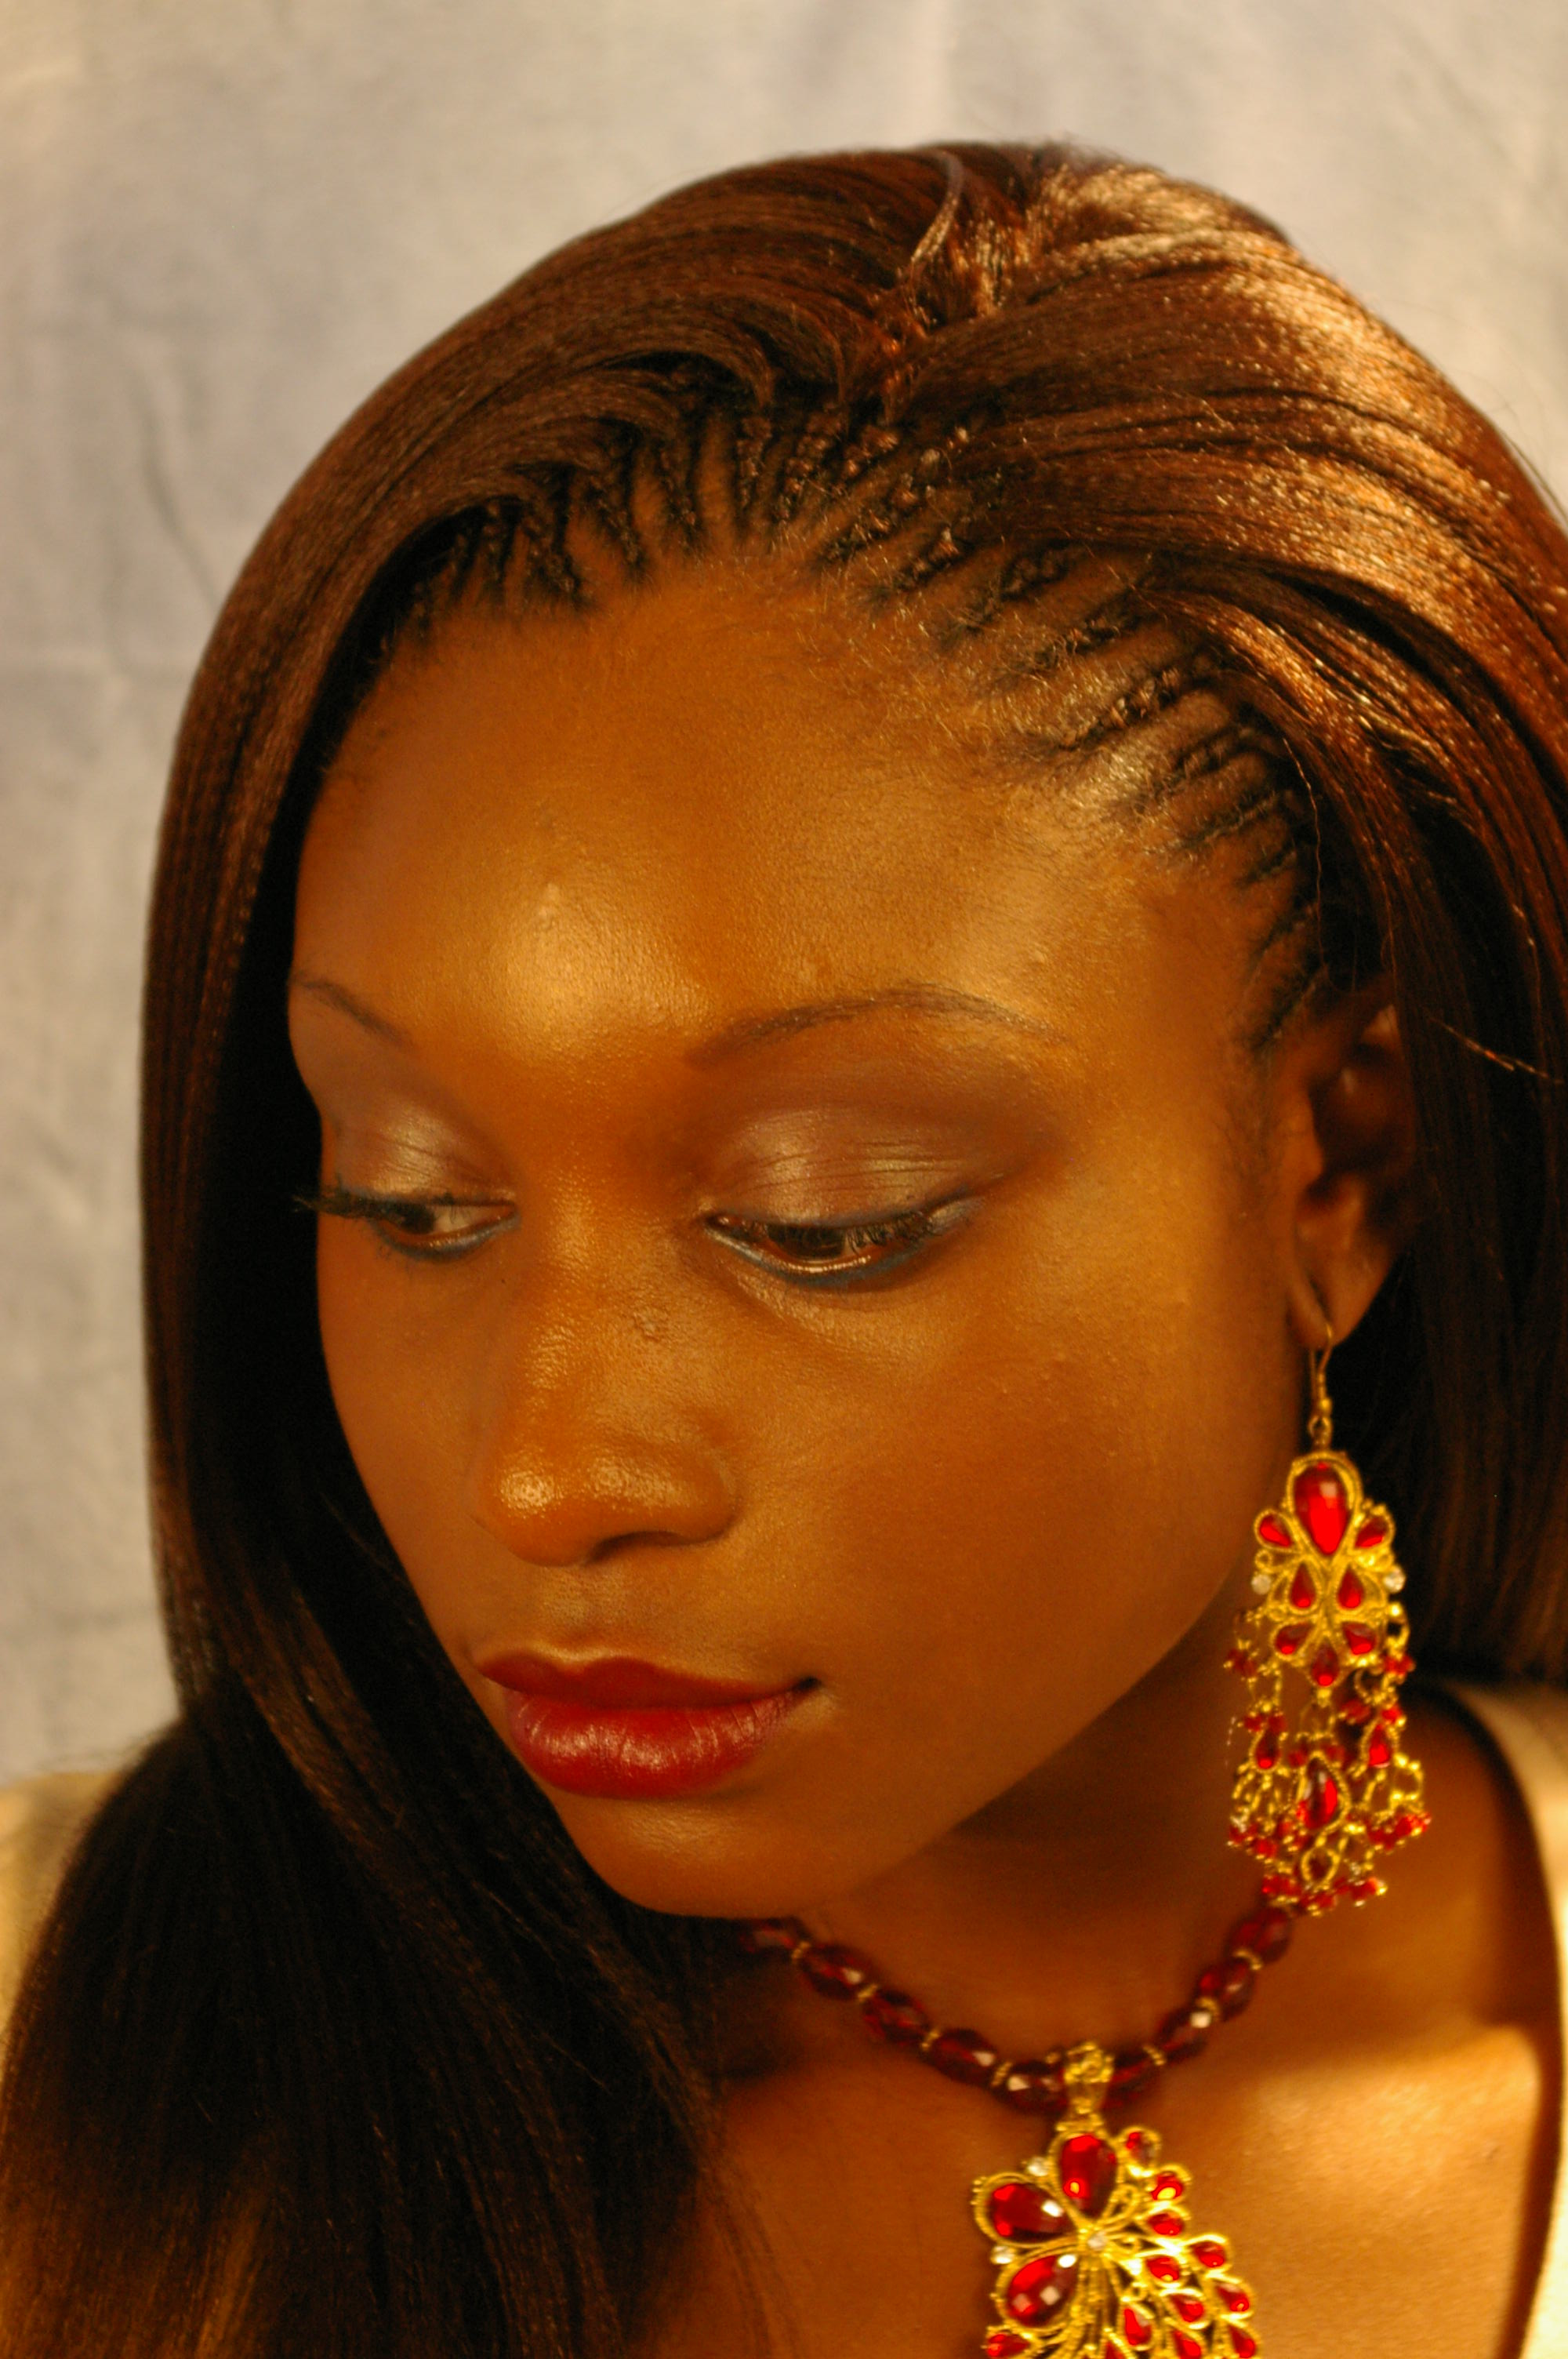 SG1S0929 Worldofbraiding Blog